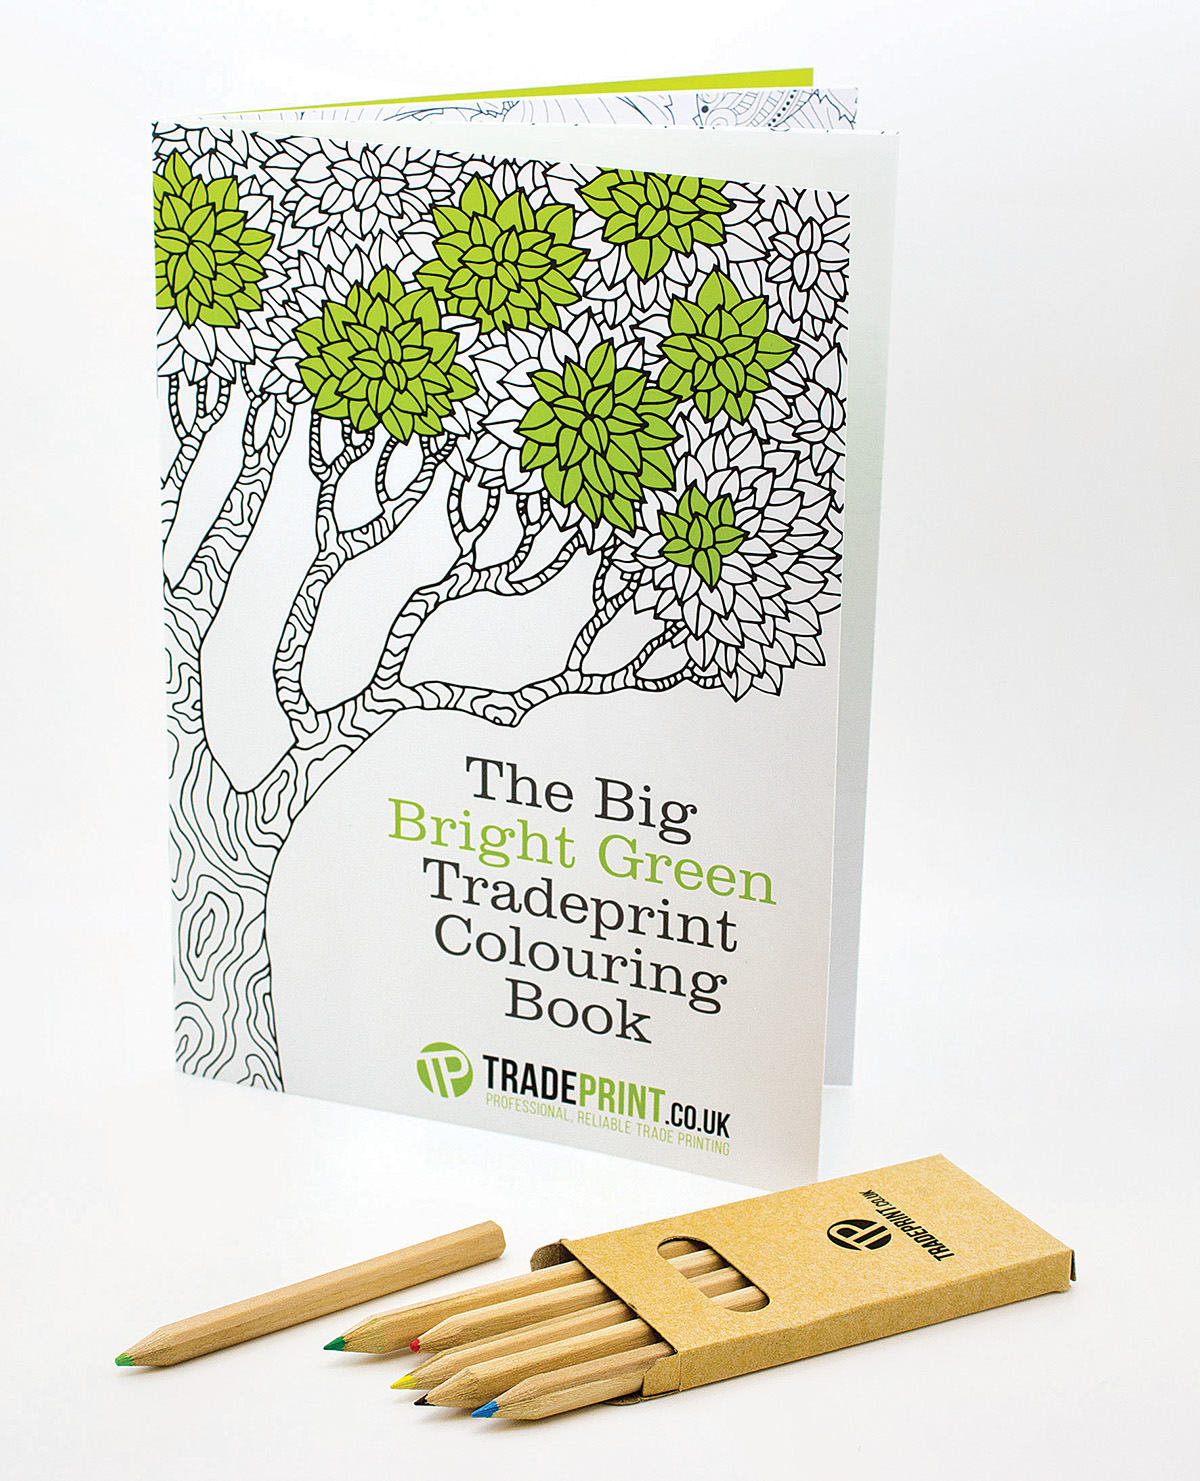 In an effort to promote creativity, Tradeprint made a colouring book and pencils